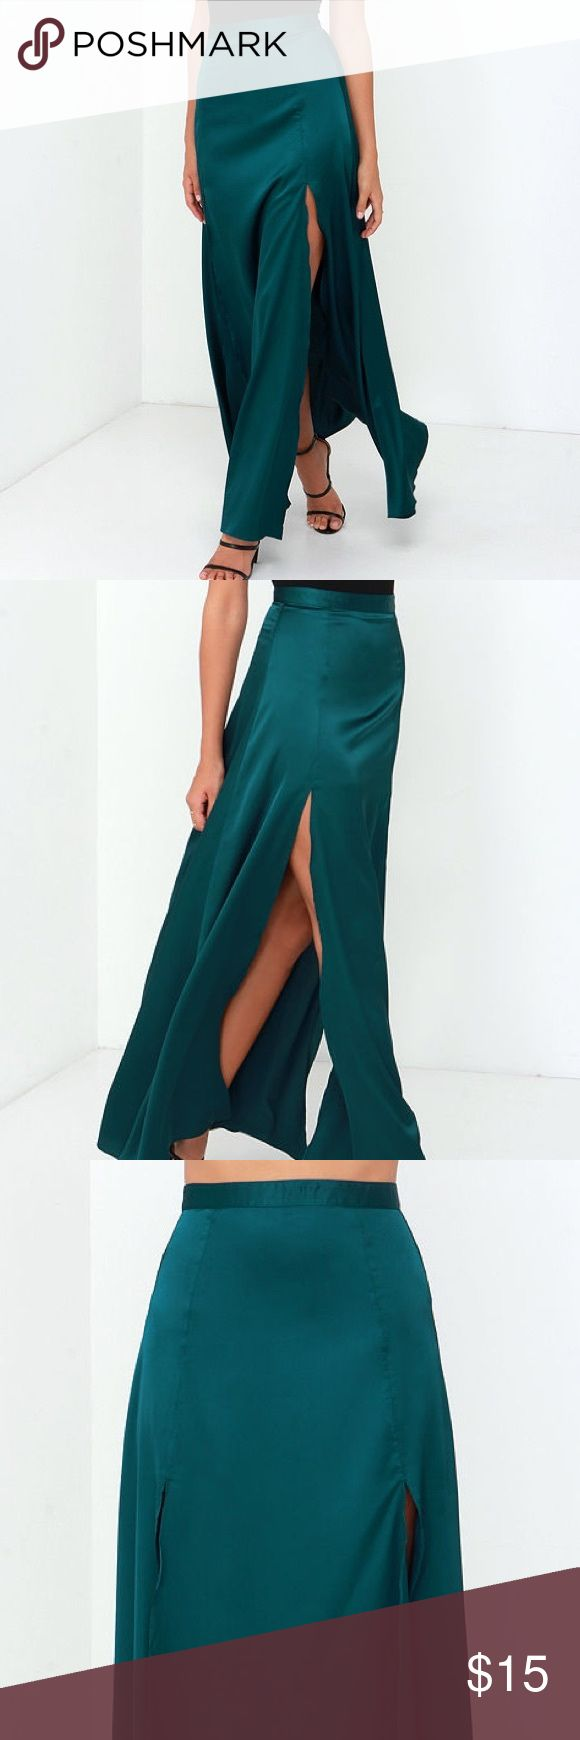 """RISE OF DAWN SPLIT SECOND DARK TEAL MAXI SKIRT Satiny woven fabric falls from a banded waist, into a flowy maxi skirt with two high, sultry side slits. Fastens at back with a small button closure and hidden zipper. Unlined. 100% Polyester. HandMachine Wash Cold.  Fit:fits true to size. Floor length.Size small measures 43"""" from top to bottom. Waist: Fitted - very fitted at natural waist. Hip: Loosely Fitted. Fabric: Fabric has no stretch. Height: 5'8"""" Bust: 33"""" Waist: 24"""" Hip: 34"""" Wearing…"""